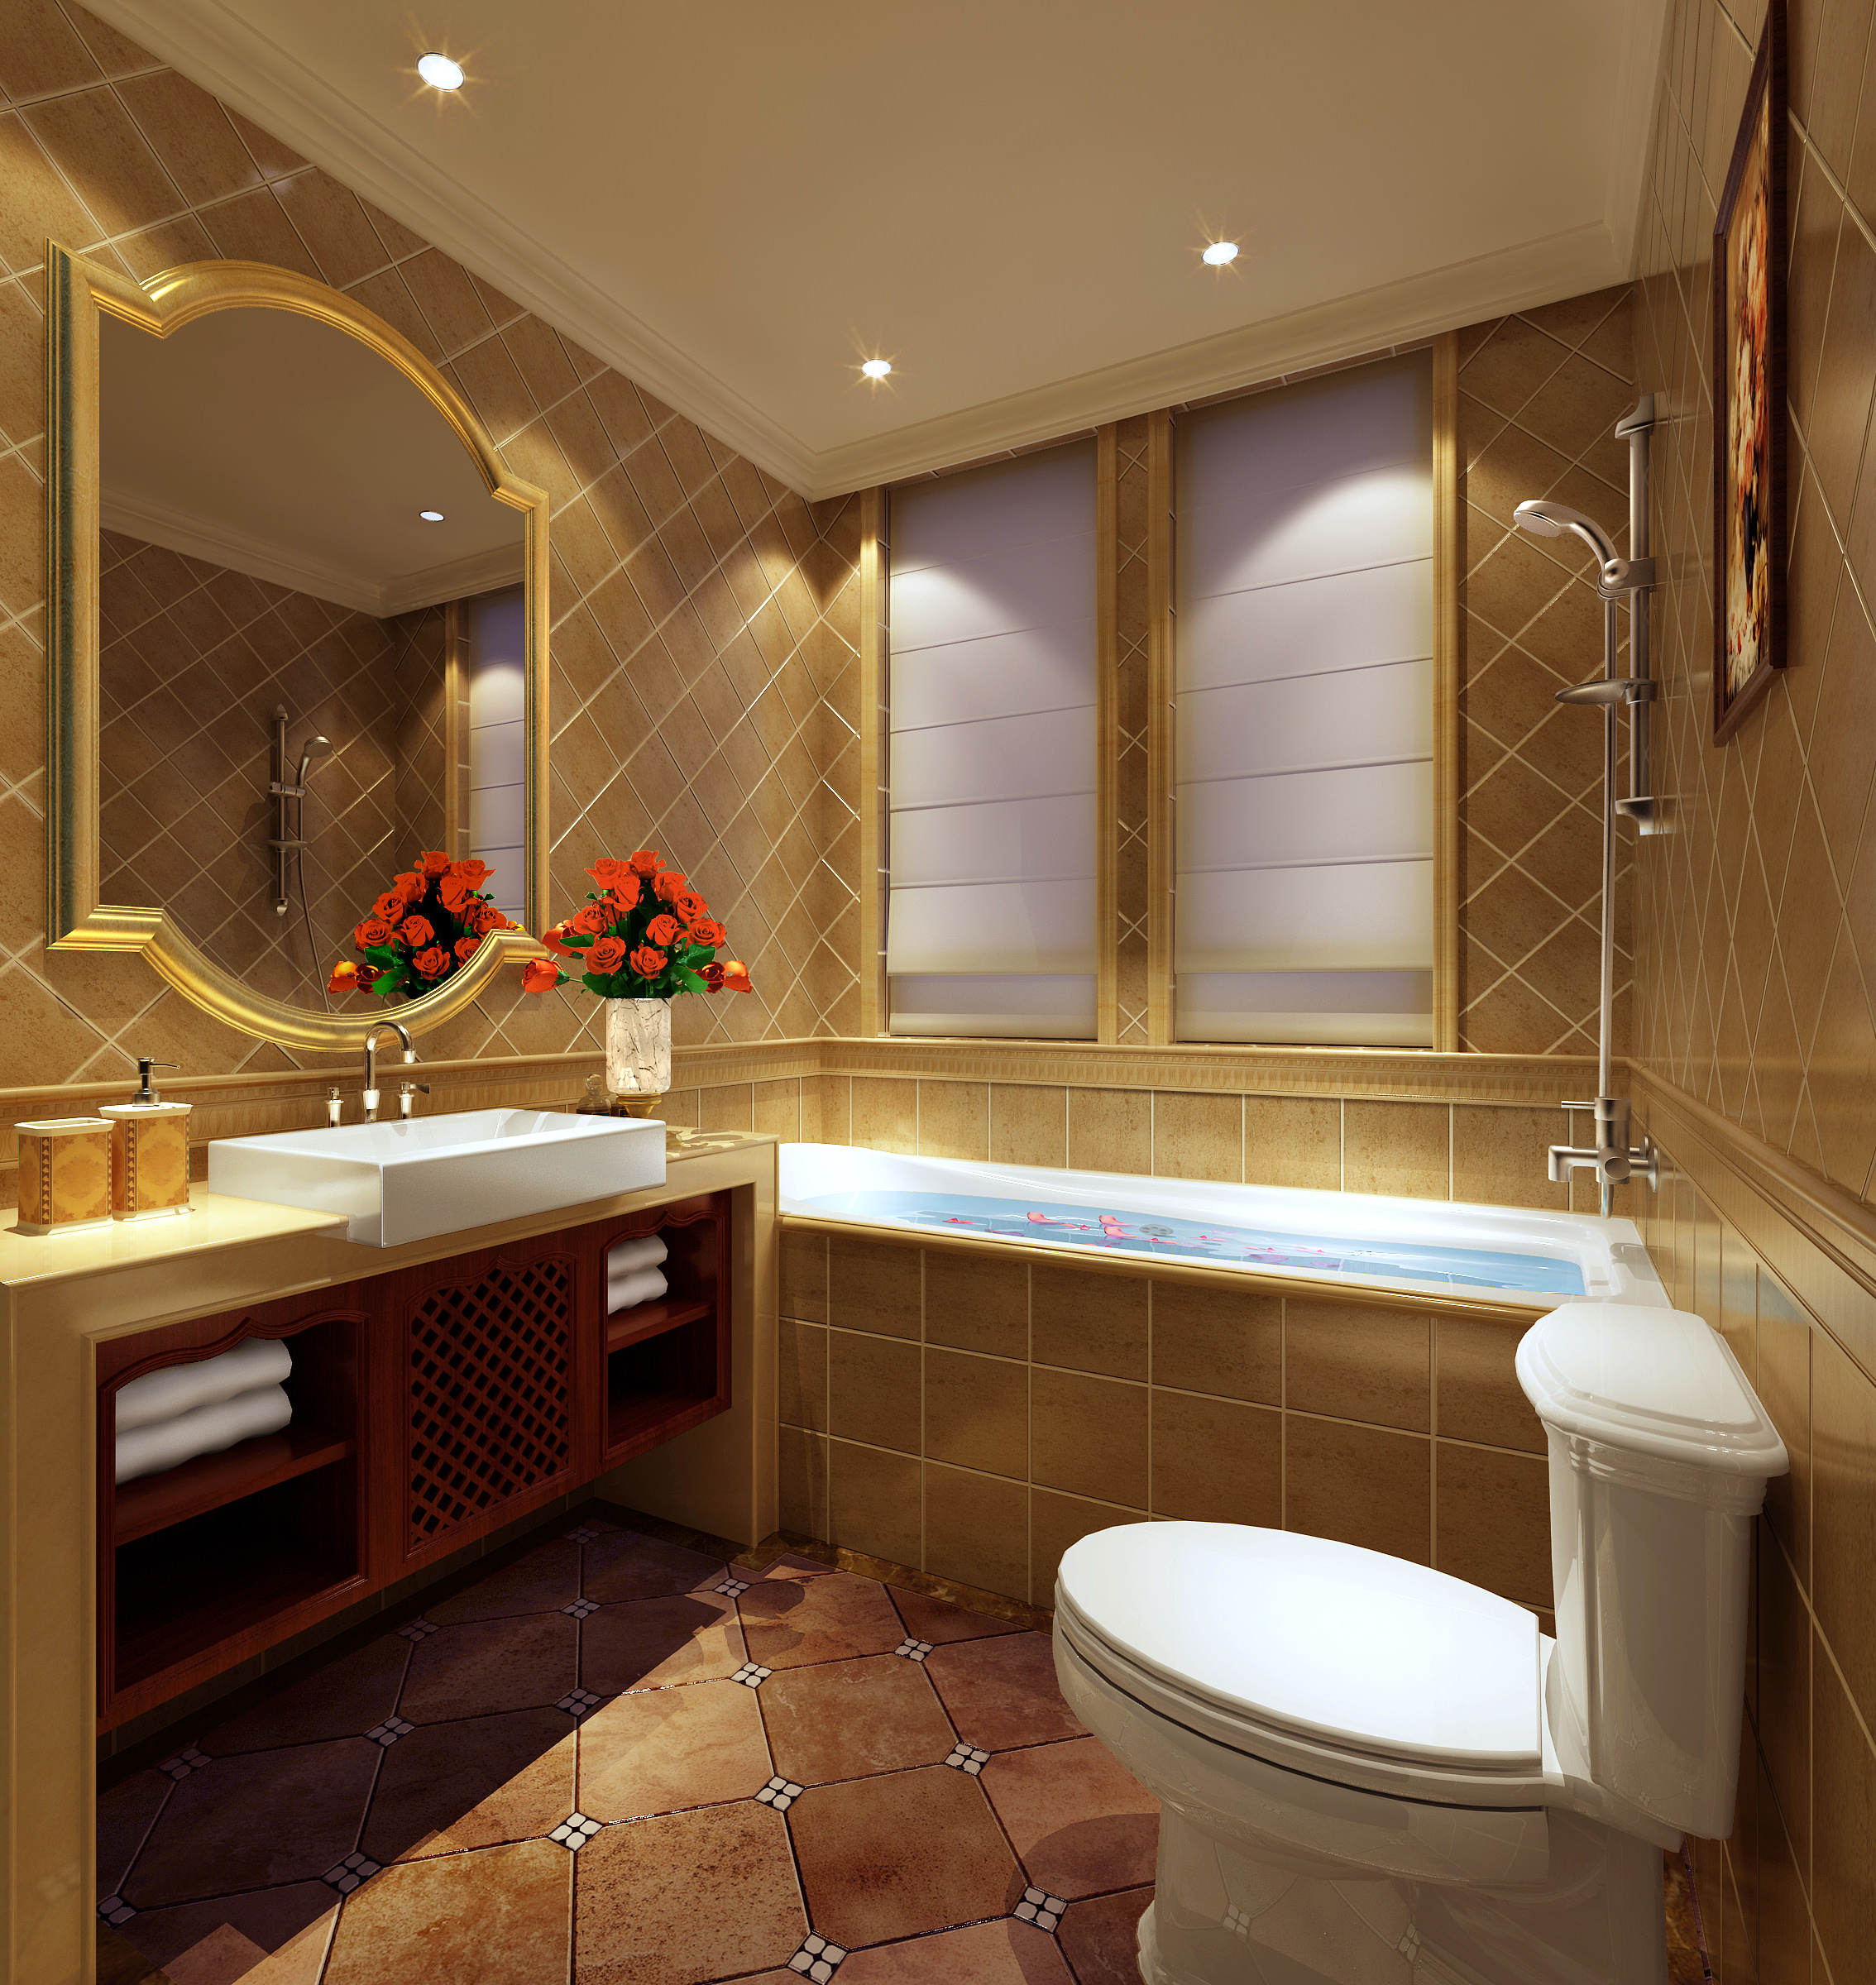 Luxury bathroom 3d model max for New model bathroom design